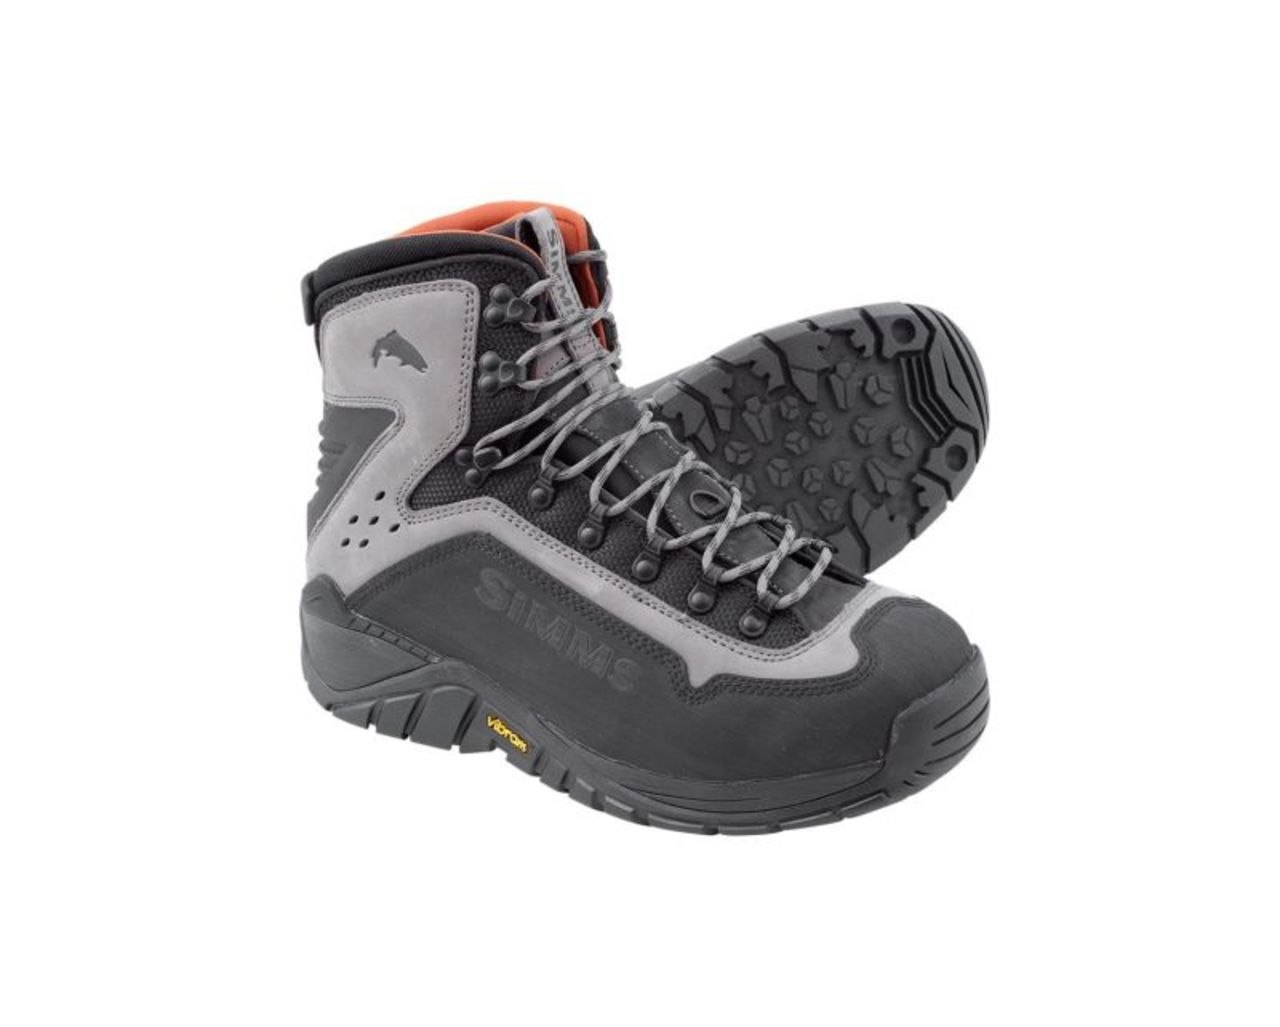 Simms Brodící boty G3 Guide Boot, Steel Grey